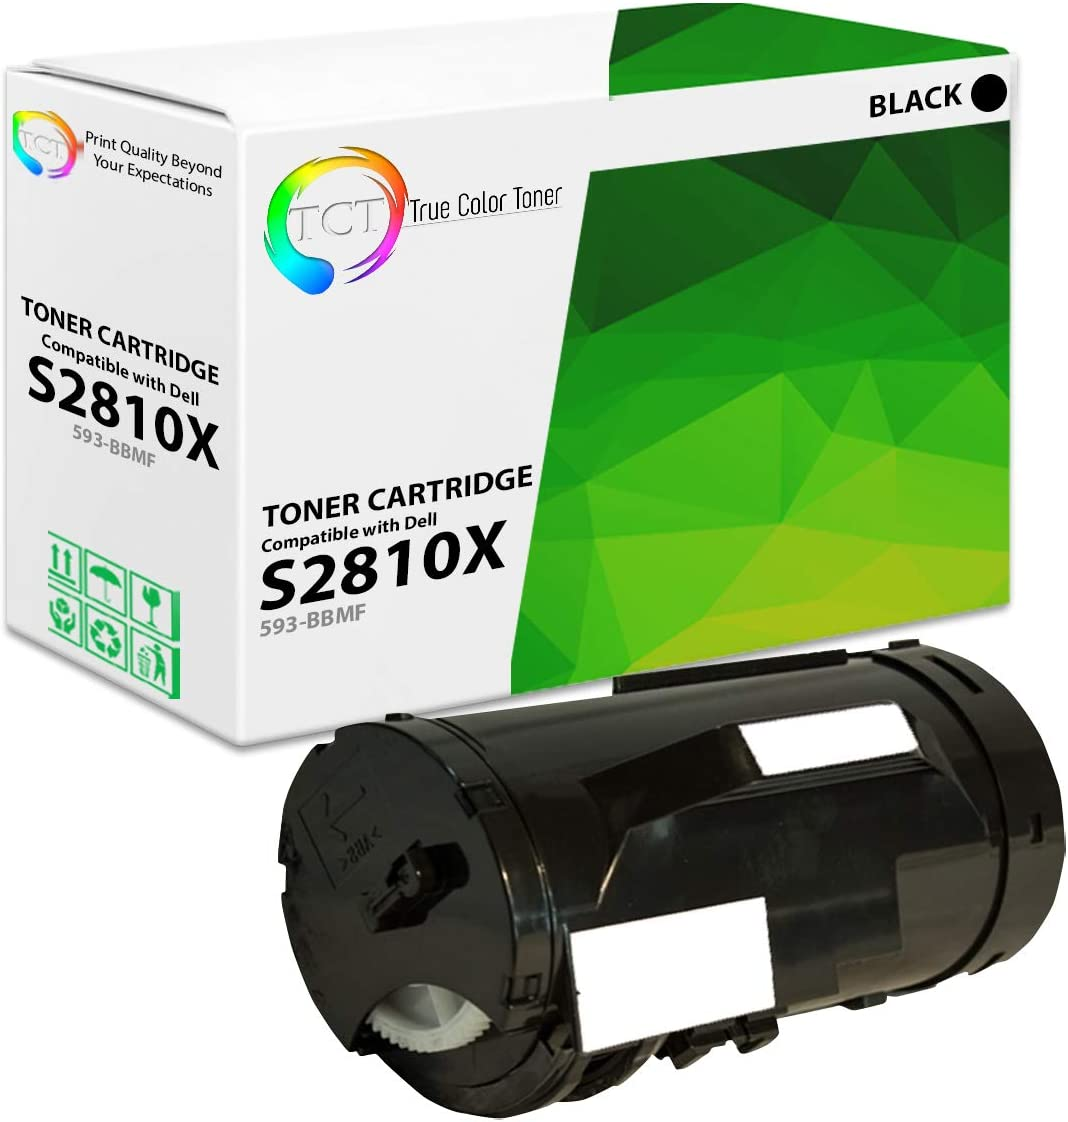 TCT Premium Compatible Toner Cartridge Replacement for Dell 593-BBMF Black High Yield Works with Dell S2810DN Printers 6,000 Pages